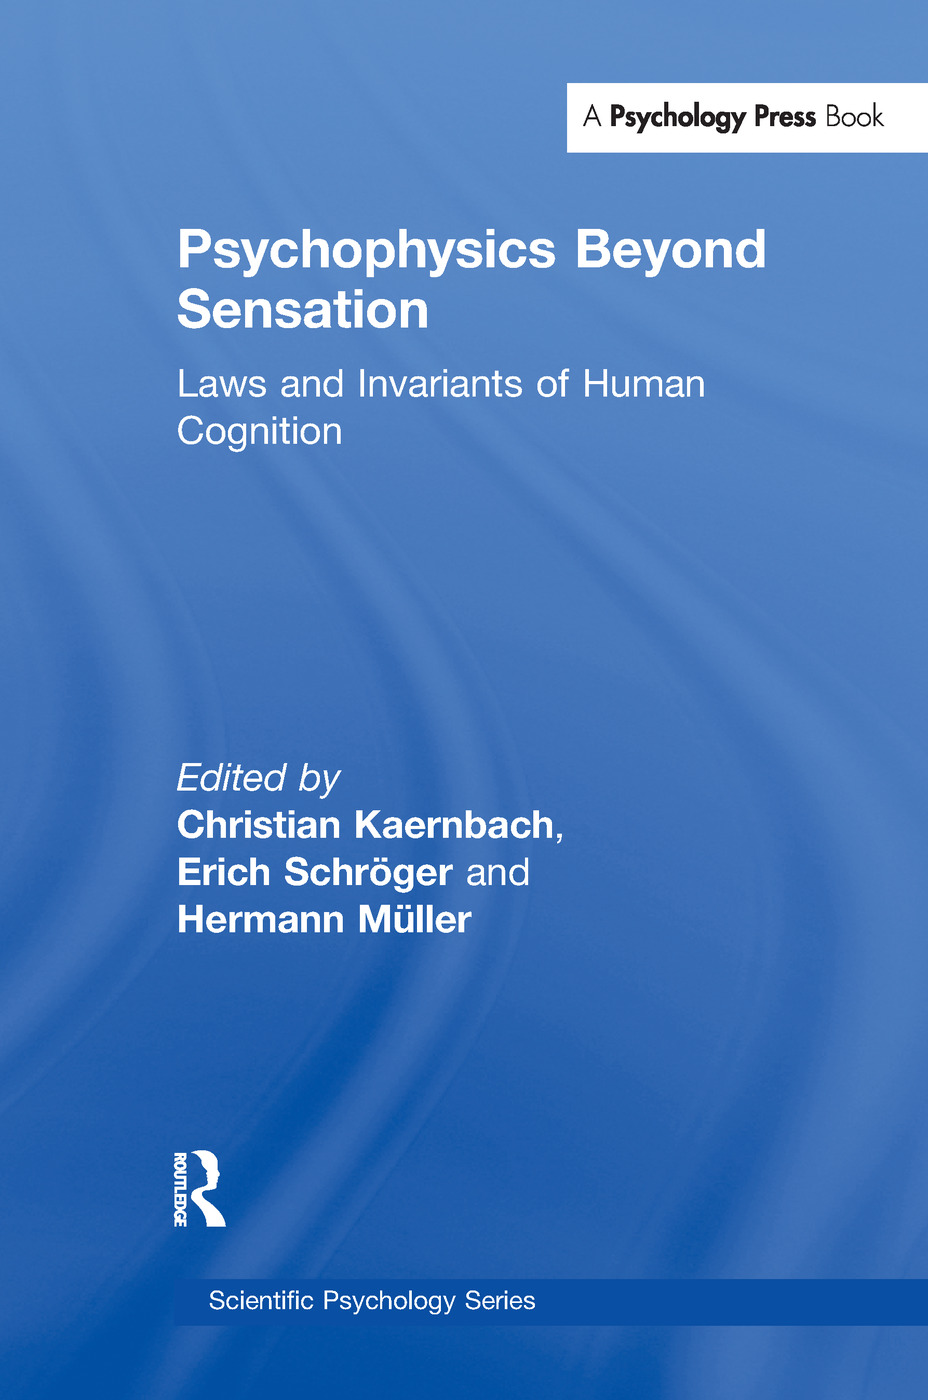 Psychophysics Beyond Sensation: Laws and Invariants of Human Cognition book cover